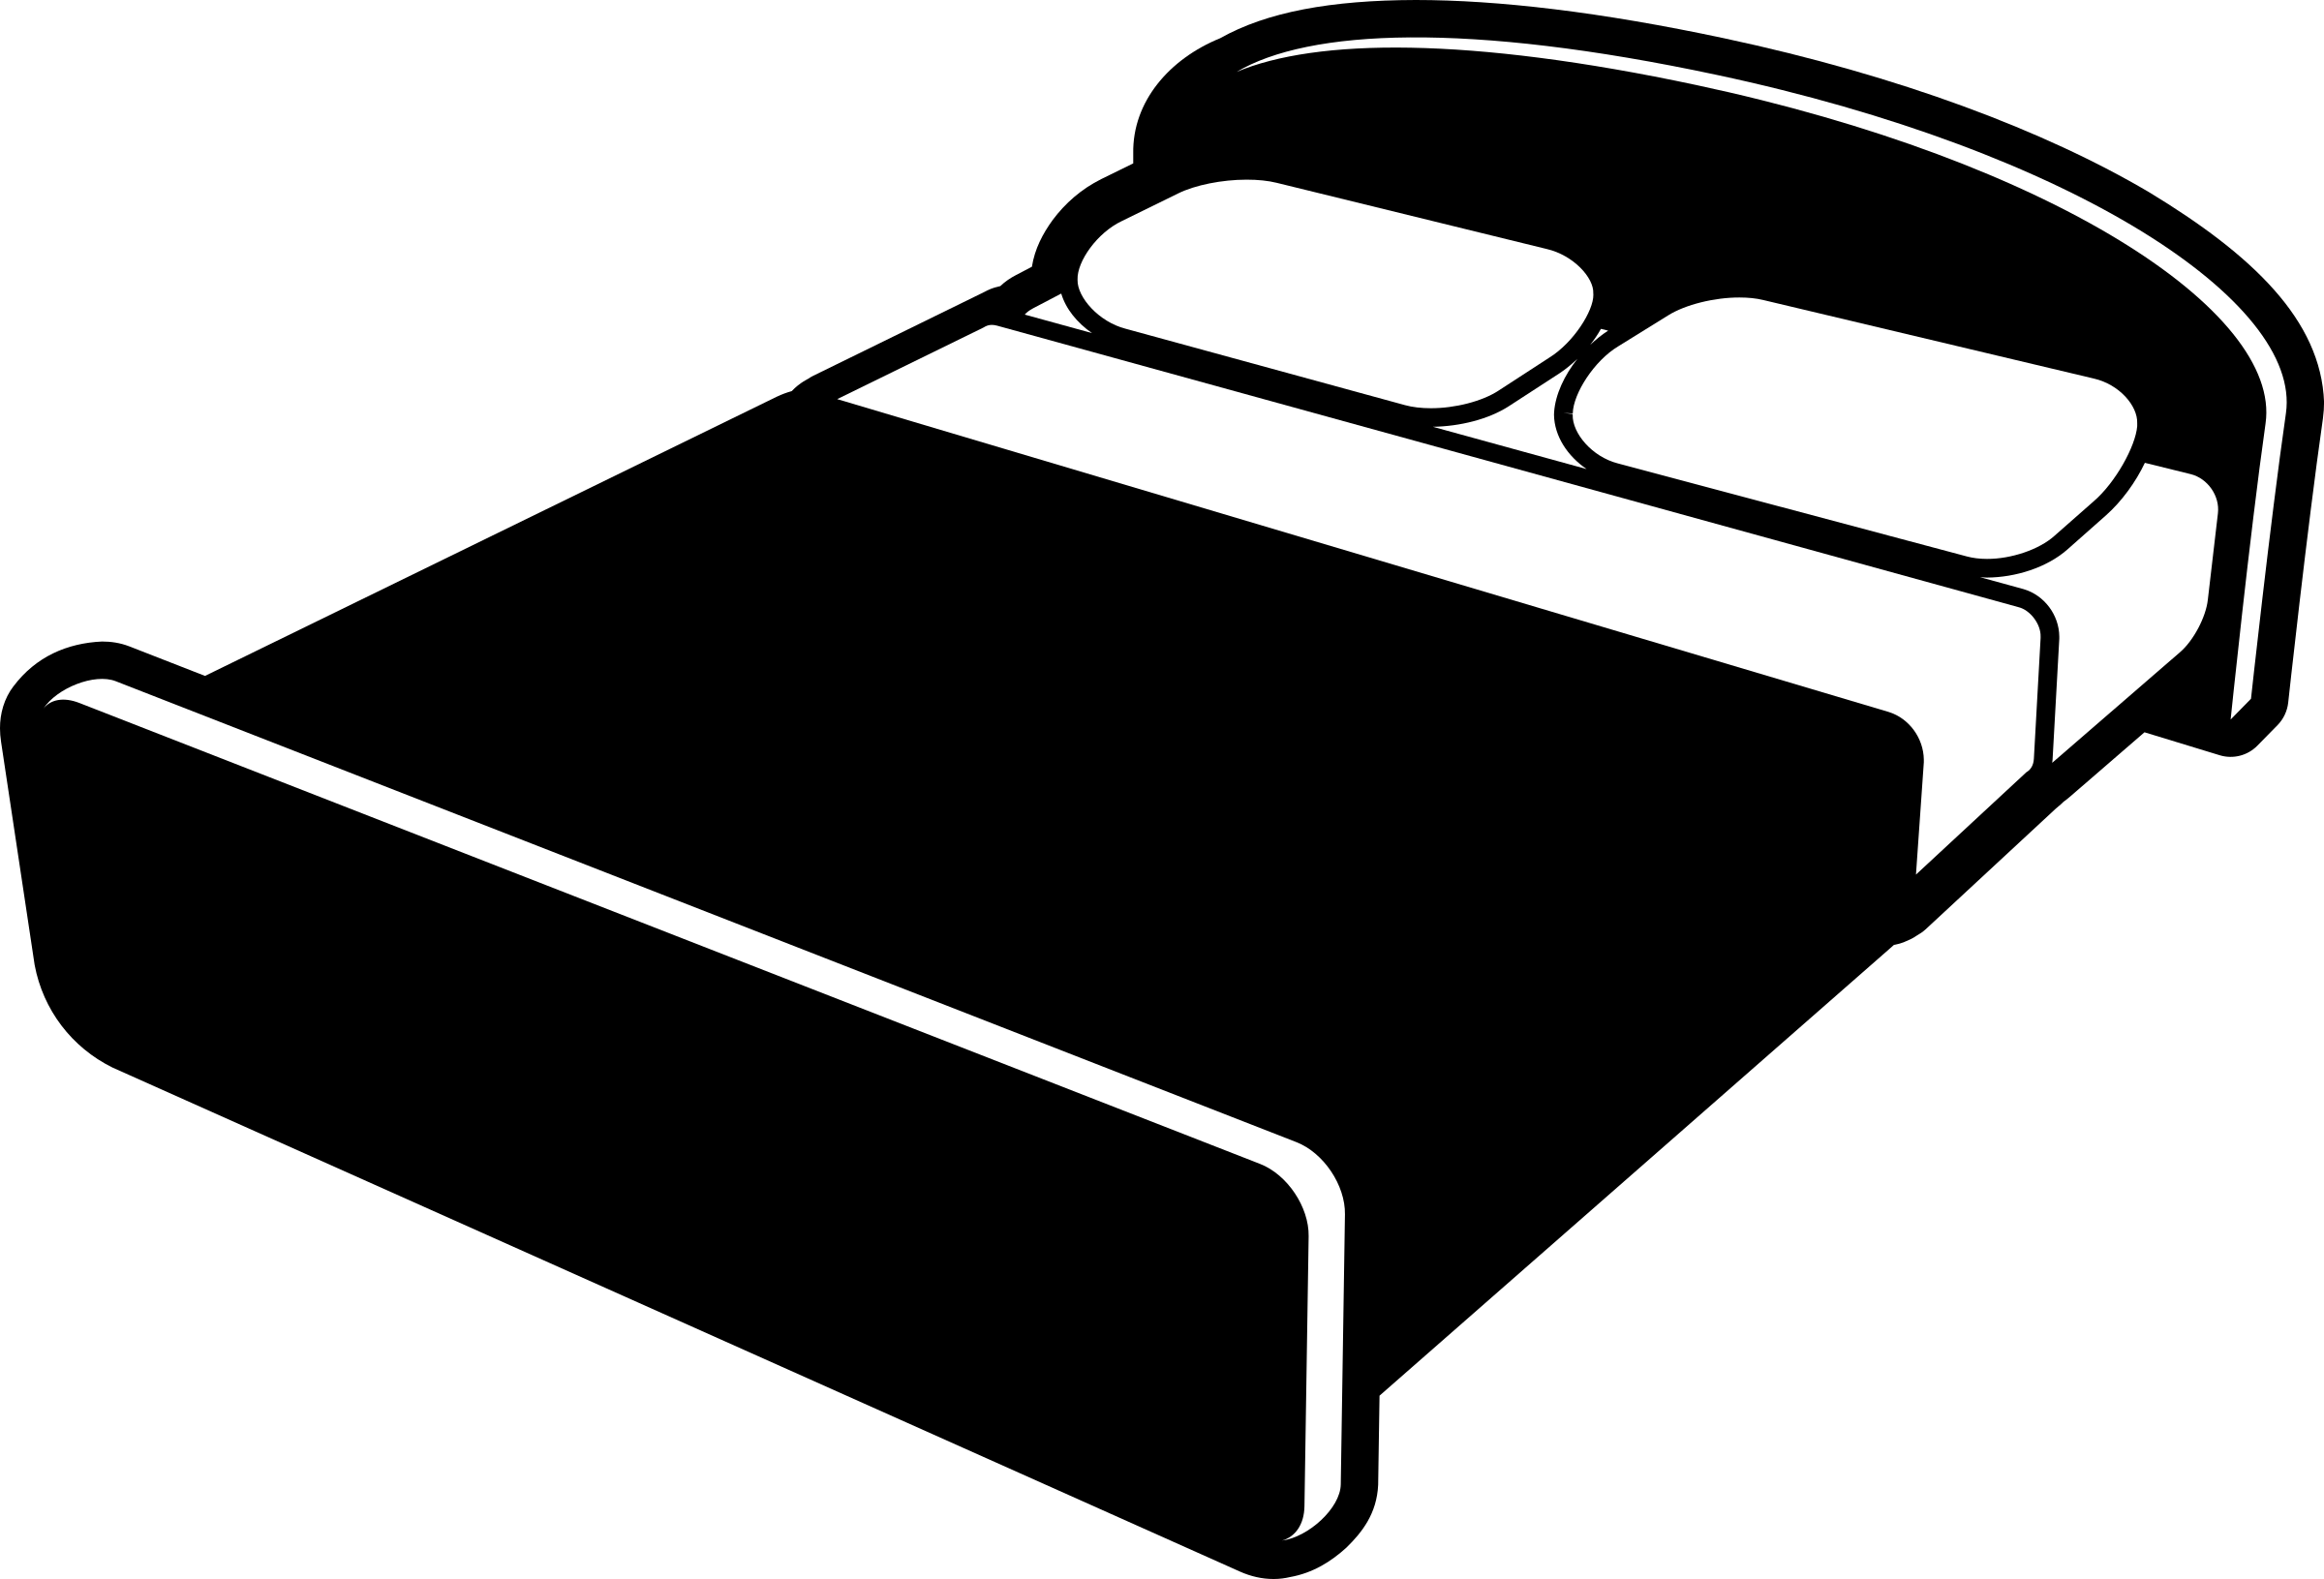 Bed black and white. Bedroom clipart bedrrom